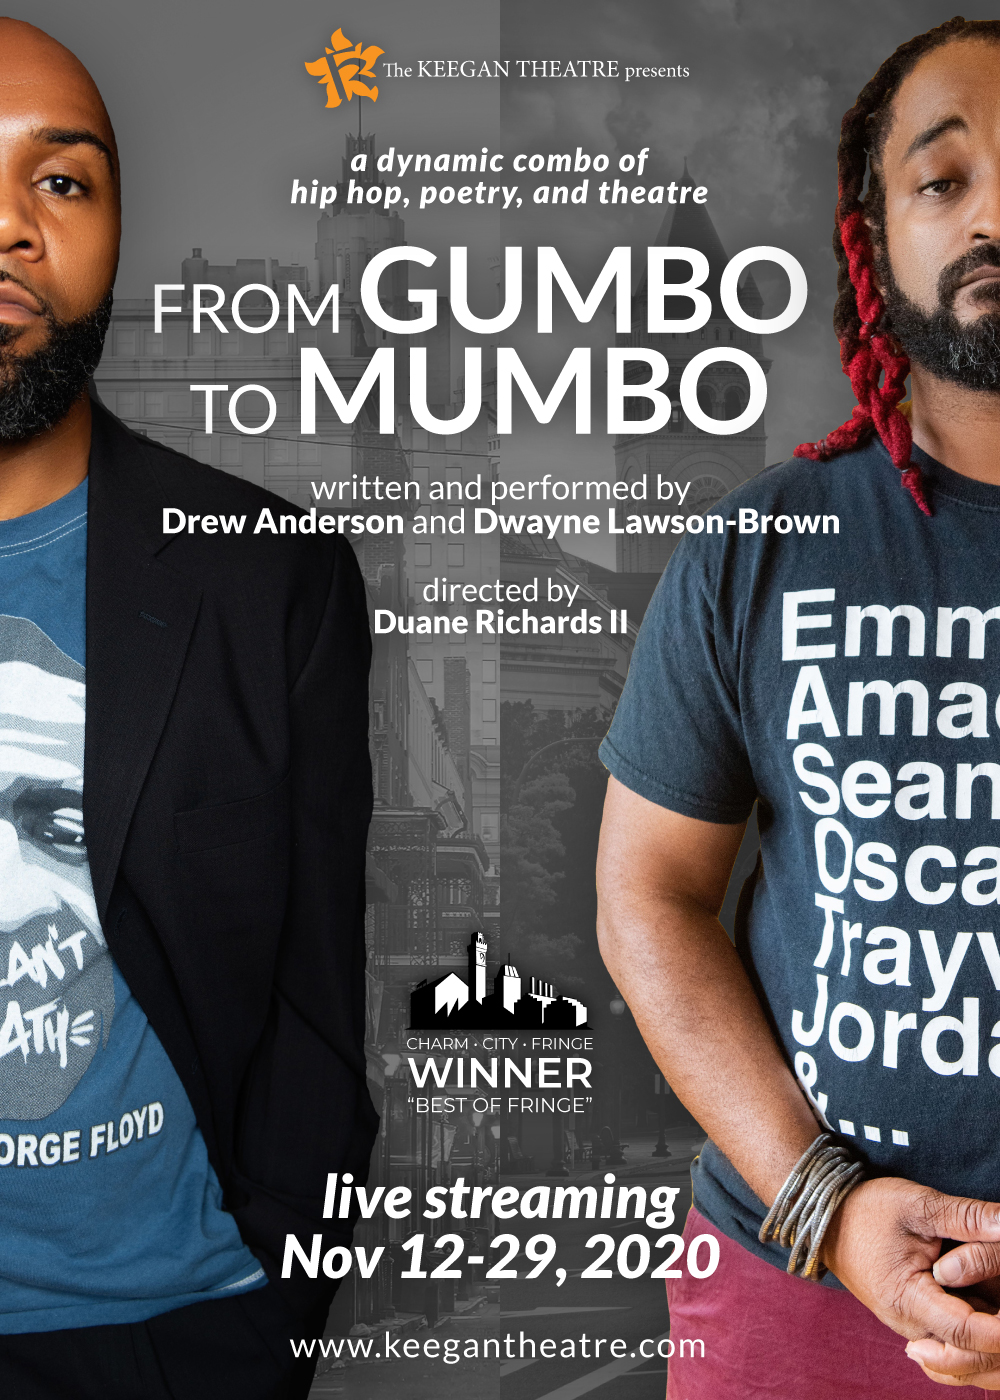 FROM GUMBO TO MUMBO, by Drew Anderson and Dwayne Lawson-Brown, directed by Duane Richards II. Photo by R. Dione Foto.